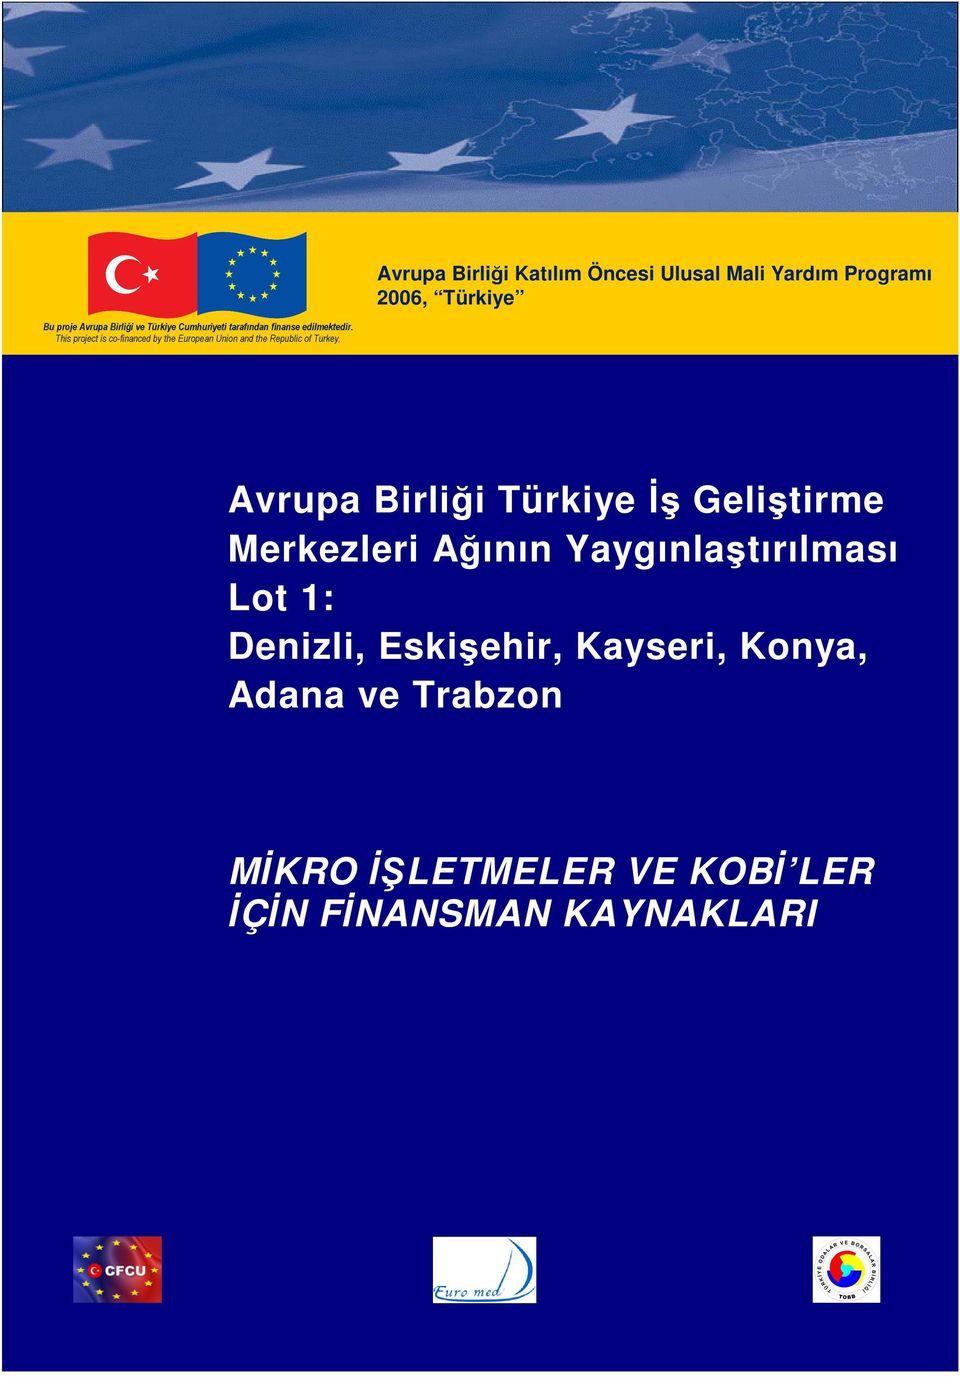 This project is co-financed by the European Union and the Republic of Turkey.